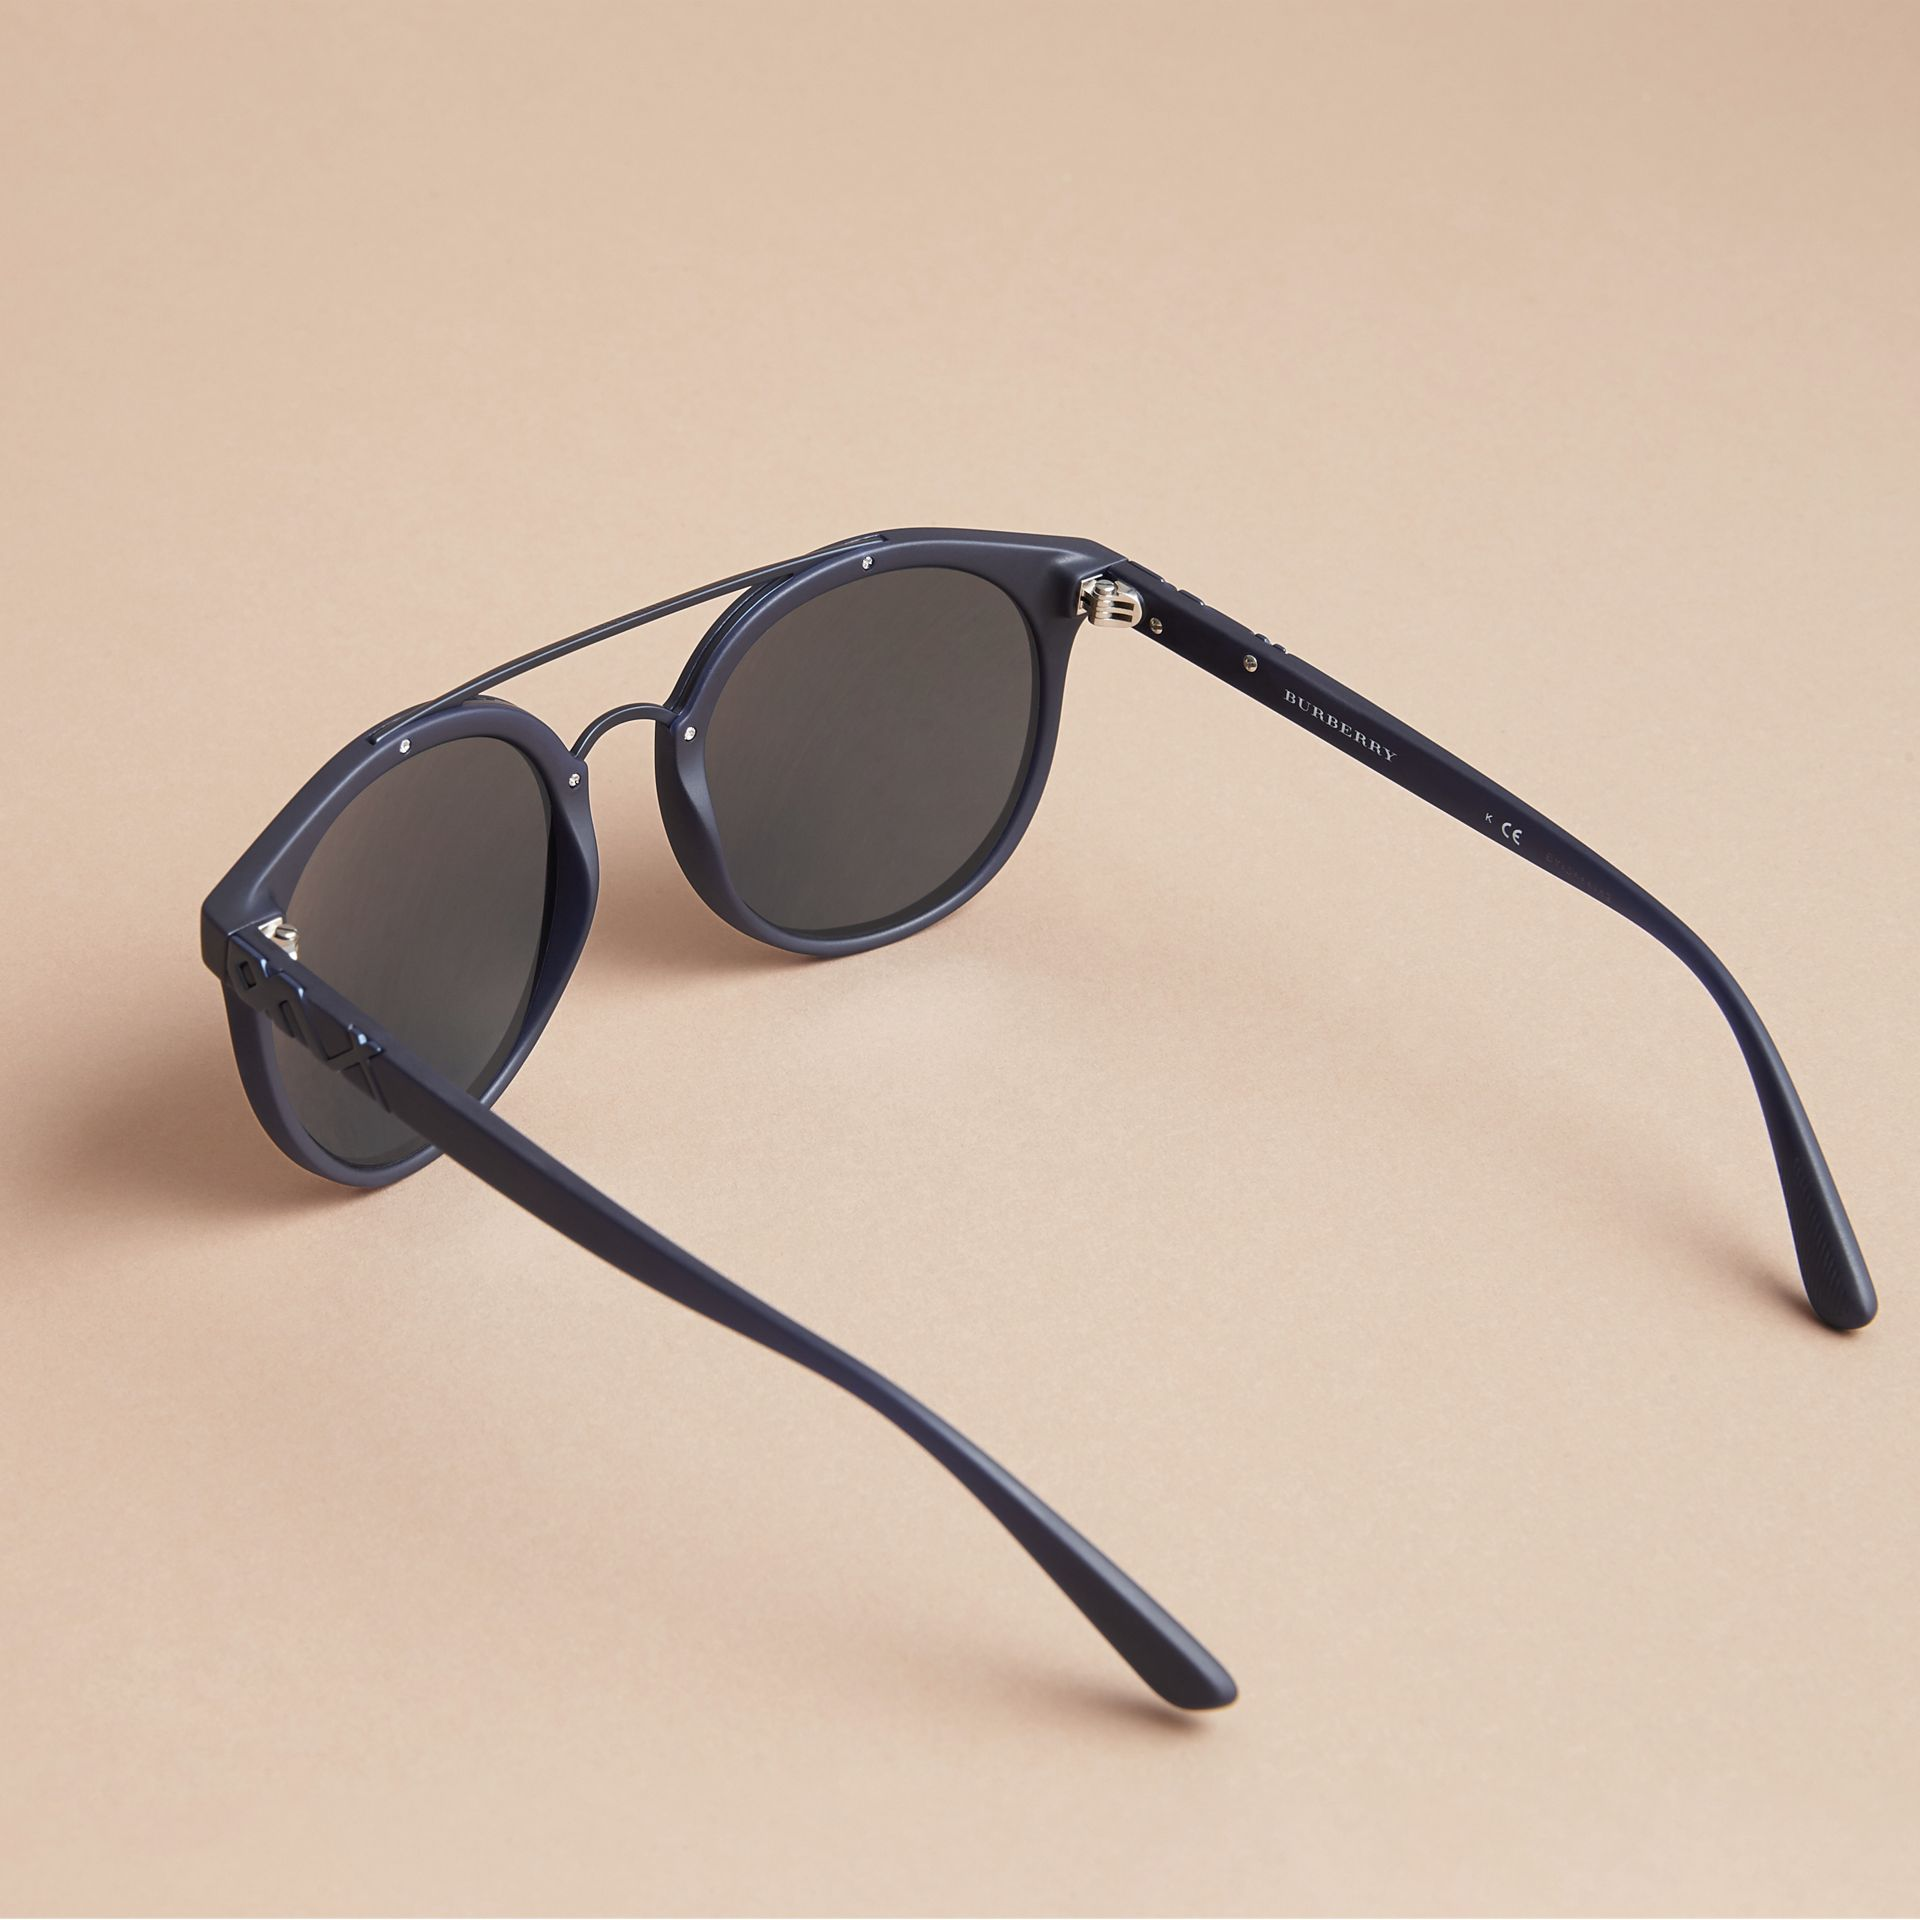 Top Bar Square Frame Sunglasses in Navy - Men | Burberry - gallery image 4